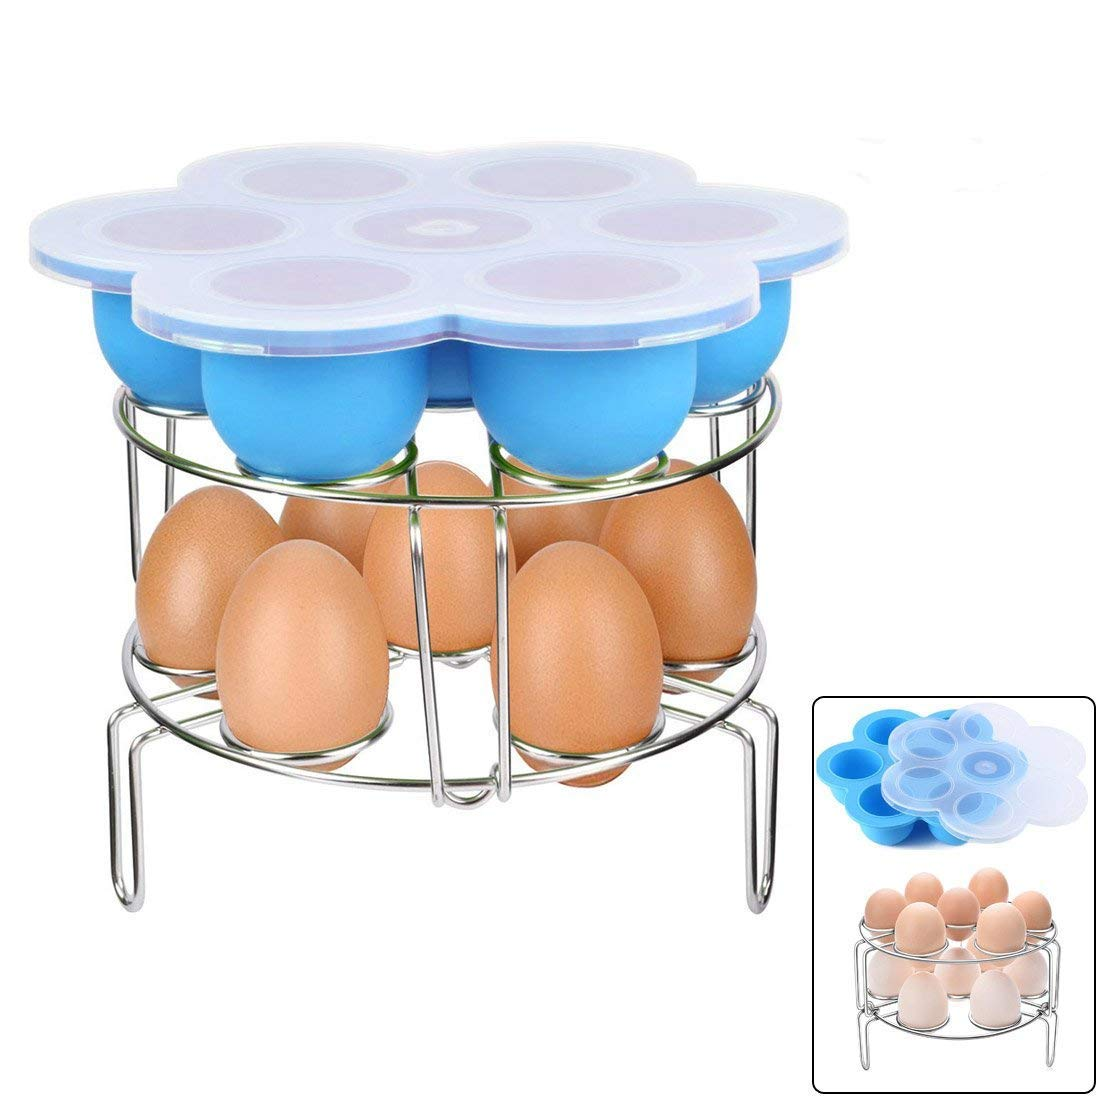 Stackable Stainless Steel Egg Steamer Rack With Silicone Egg Bites Molds for Instant Pot Accessories, Fits Instant Pot 5,6,8 qt Pressure Cooker Food Vegetable Steam Rack Stand, Multifunction! 3 PCS OYOY